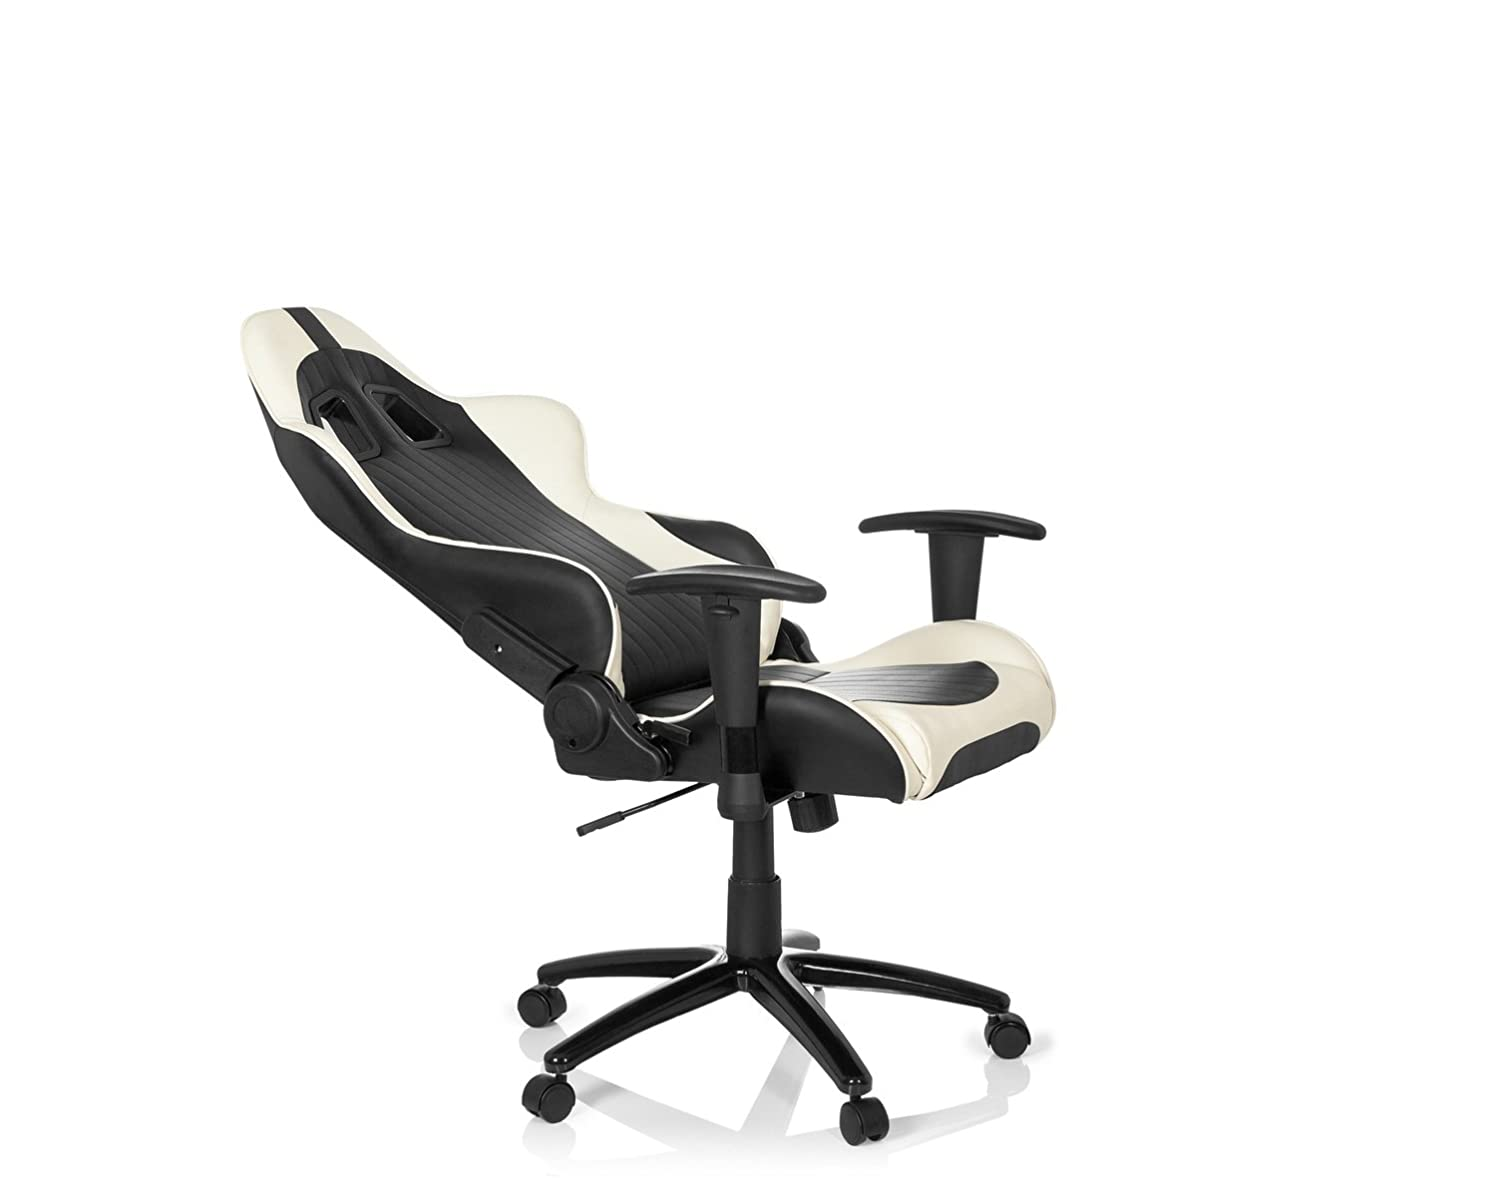 Hjh Office Monaco Silla de oficina Multicolor (Black/White) 52x63x143 cm: Amazon.es: Hogar